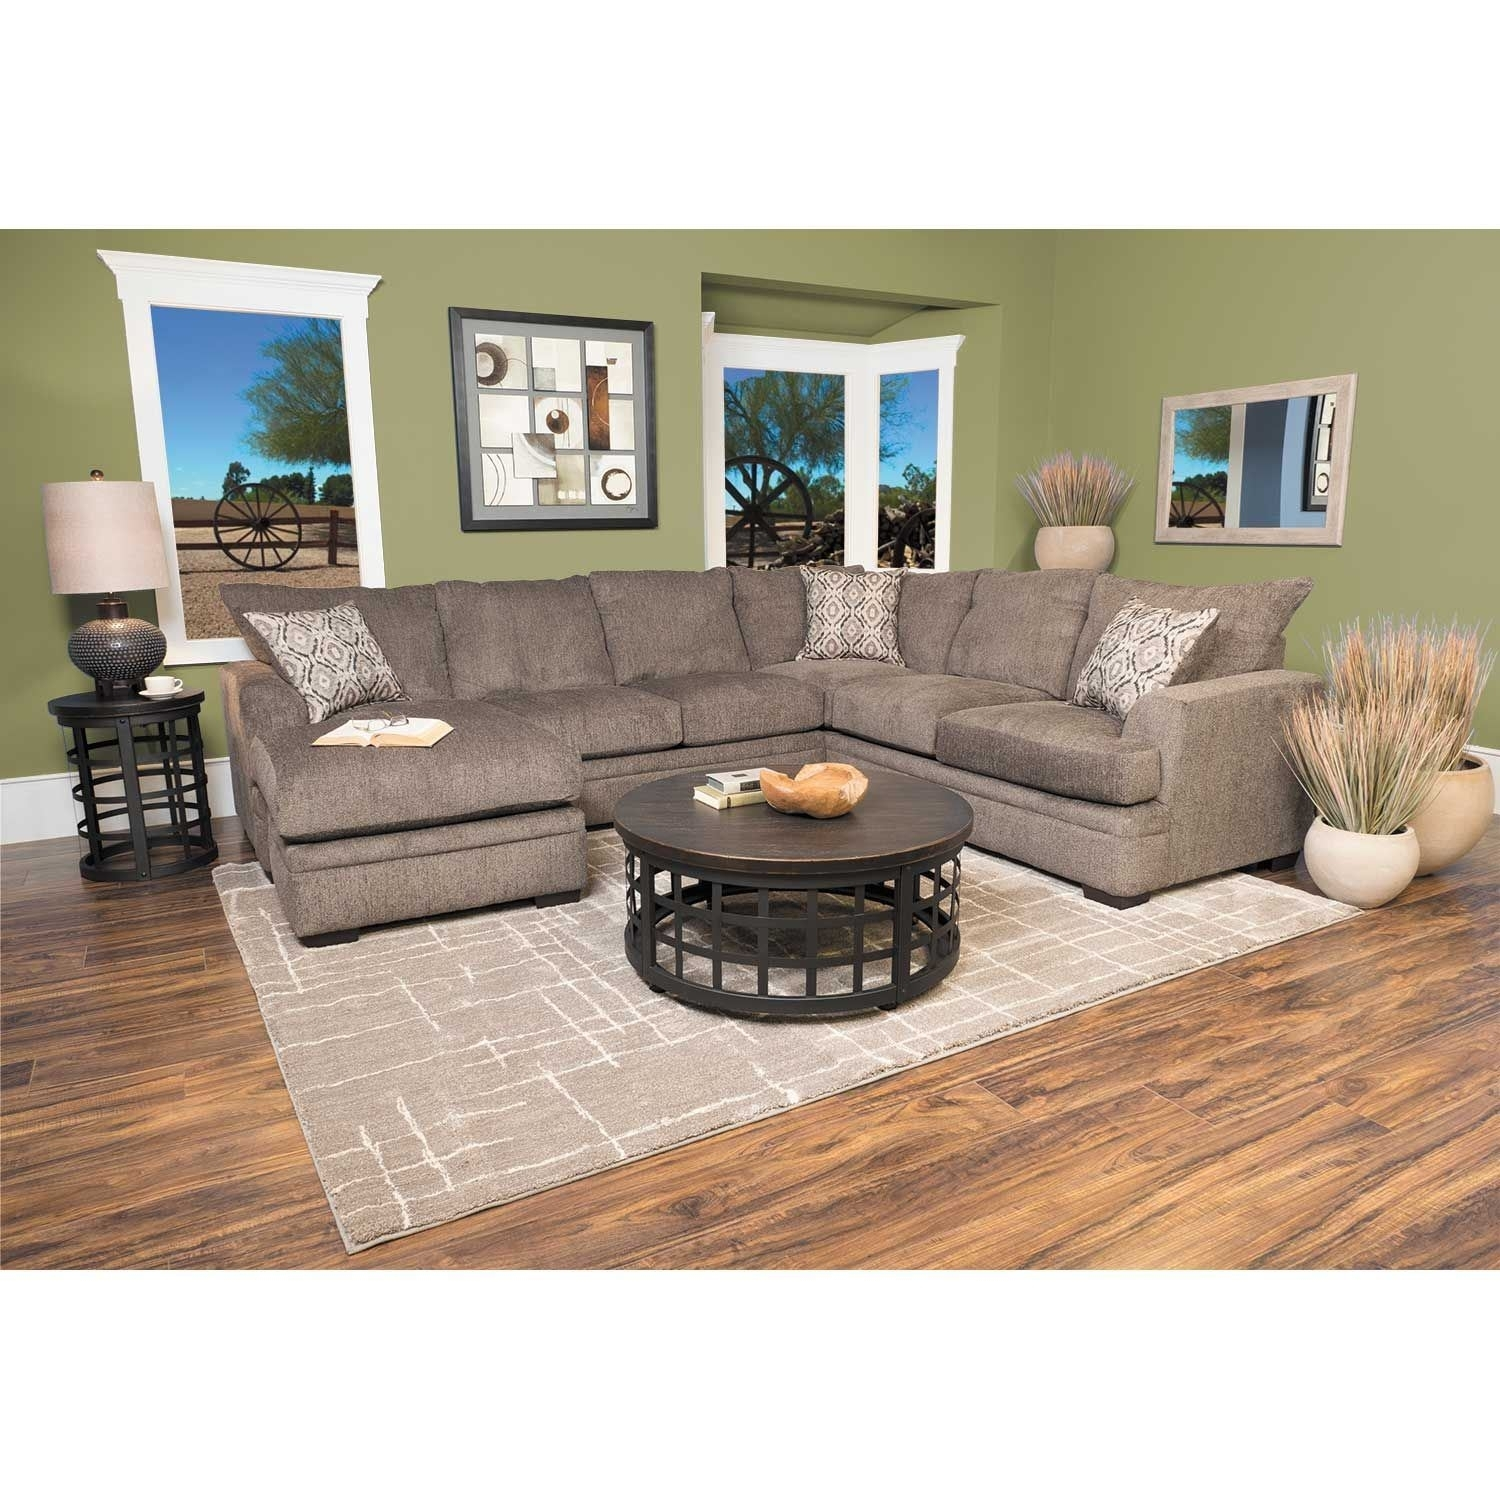 2Pc Pewter Raf Sectional W/chaise C2-68Rc-2Pc | Afw | Afw in Evan 2 Piece Sectionals With Raf Chaise (Image 2 of 30)